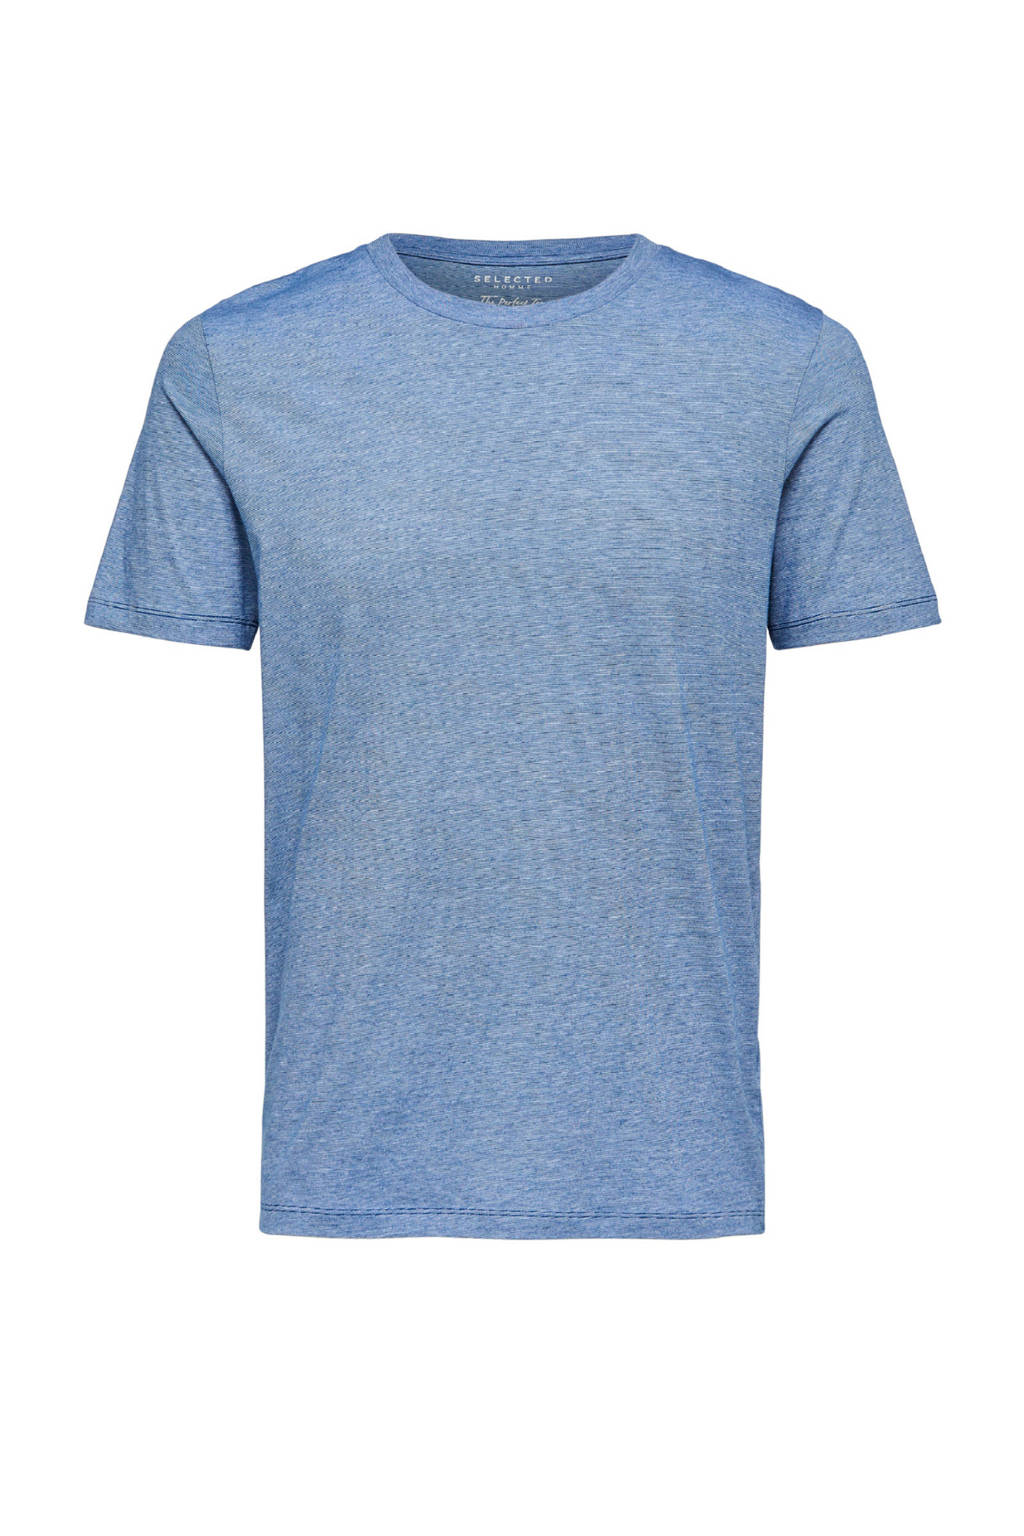 SELECTED HOMME gemêleerd T-shirt, blauw/ wit